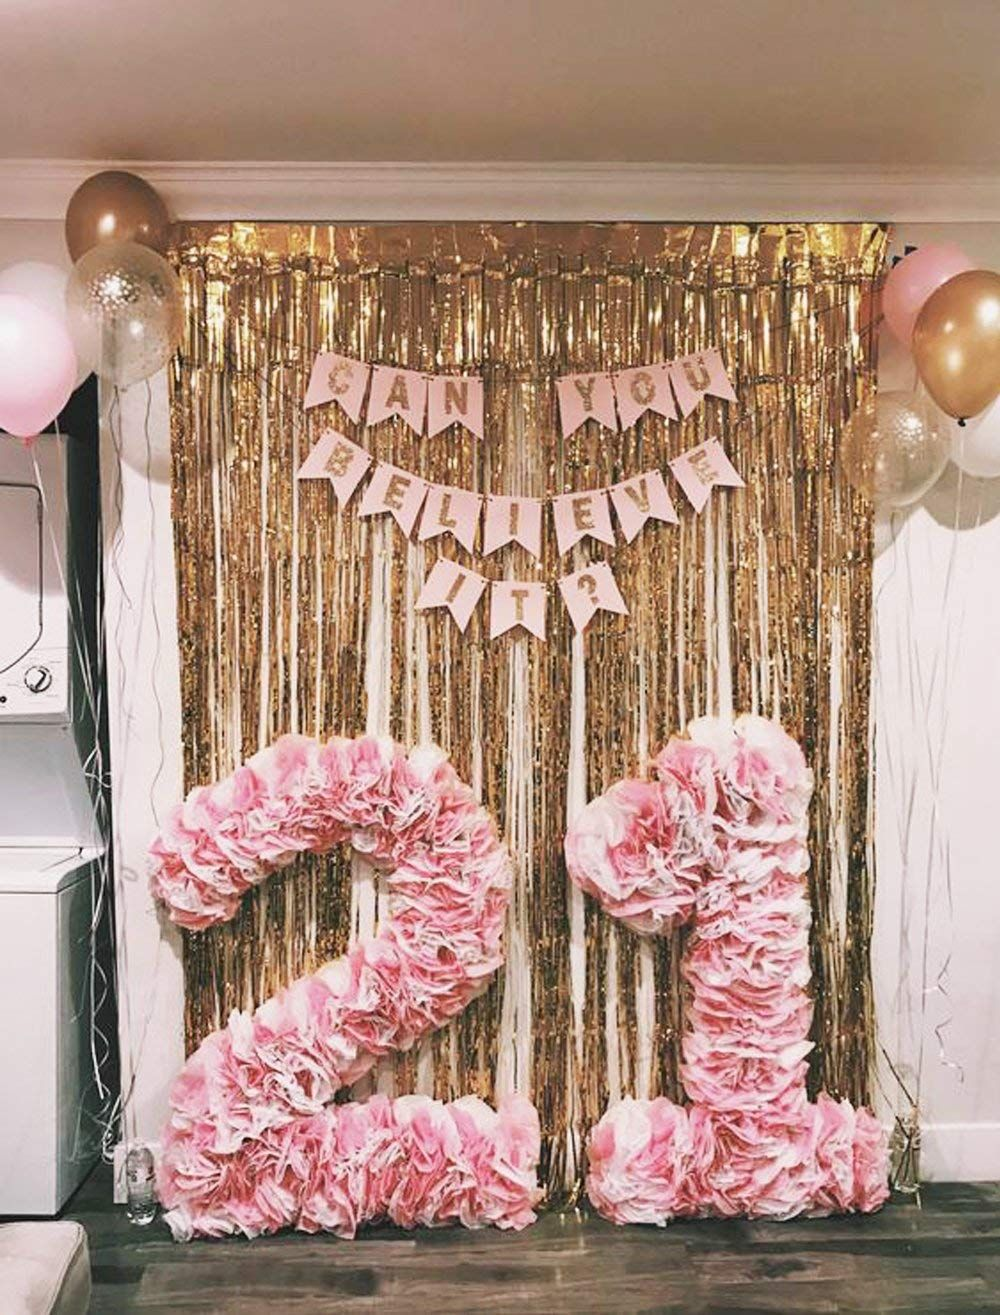 Joyclub gold foil fringe curtain metallic photo booth tinsel backdrop door curtains for wedding birthday party fall ball and christmas festival also sebastian in st rh pinterest